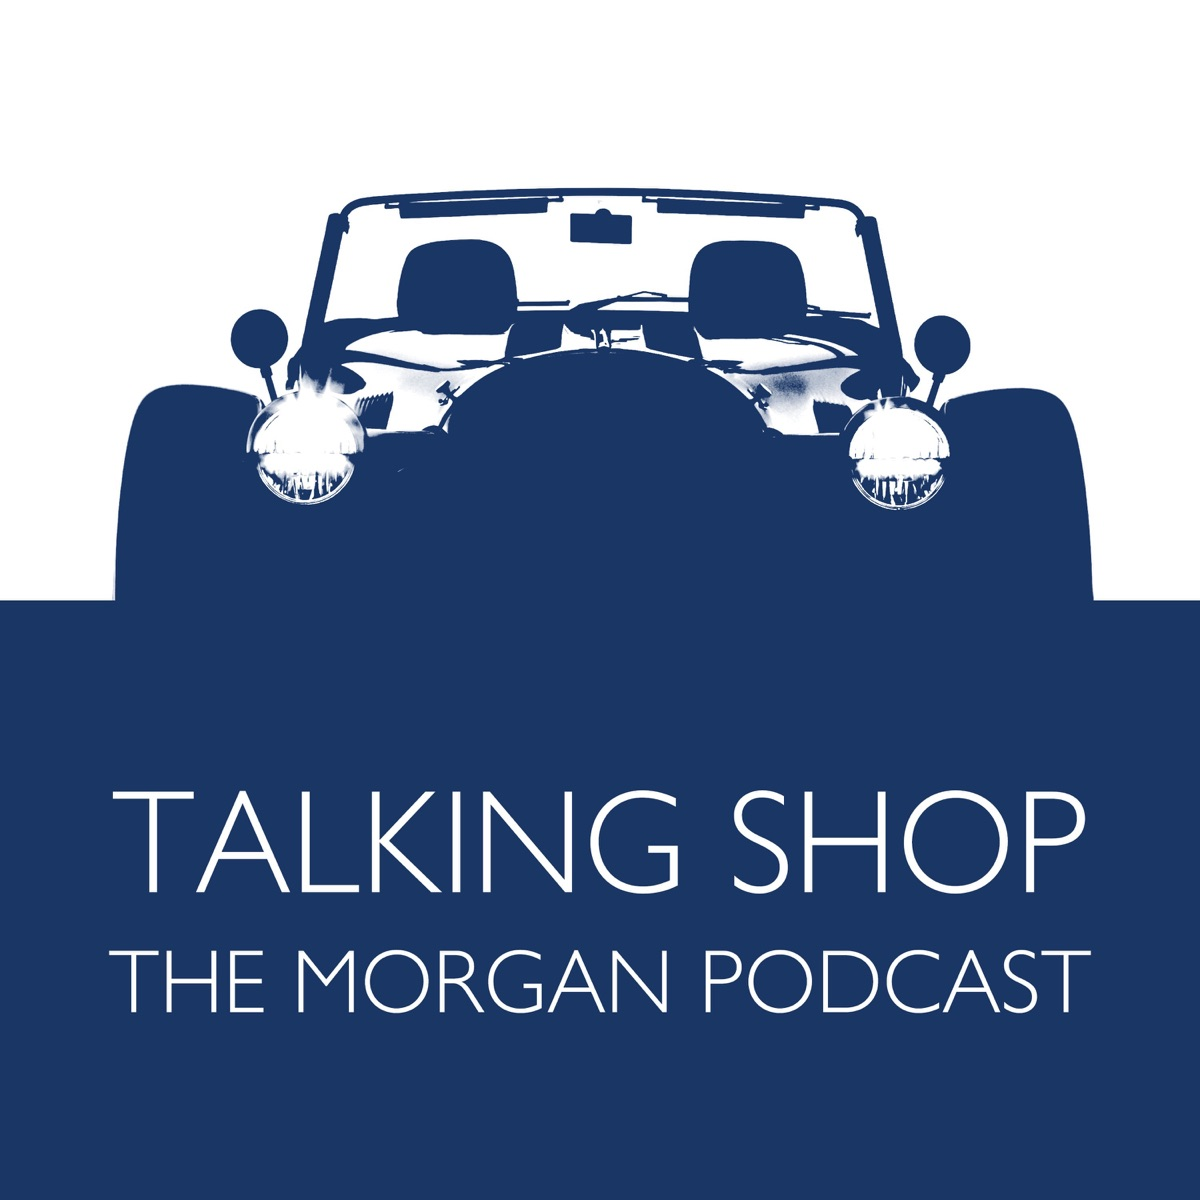 Talking Shop: The Morgan Podcast